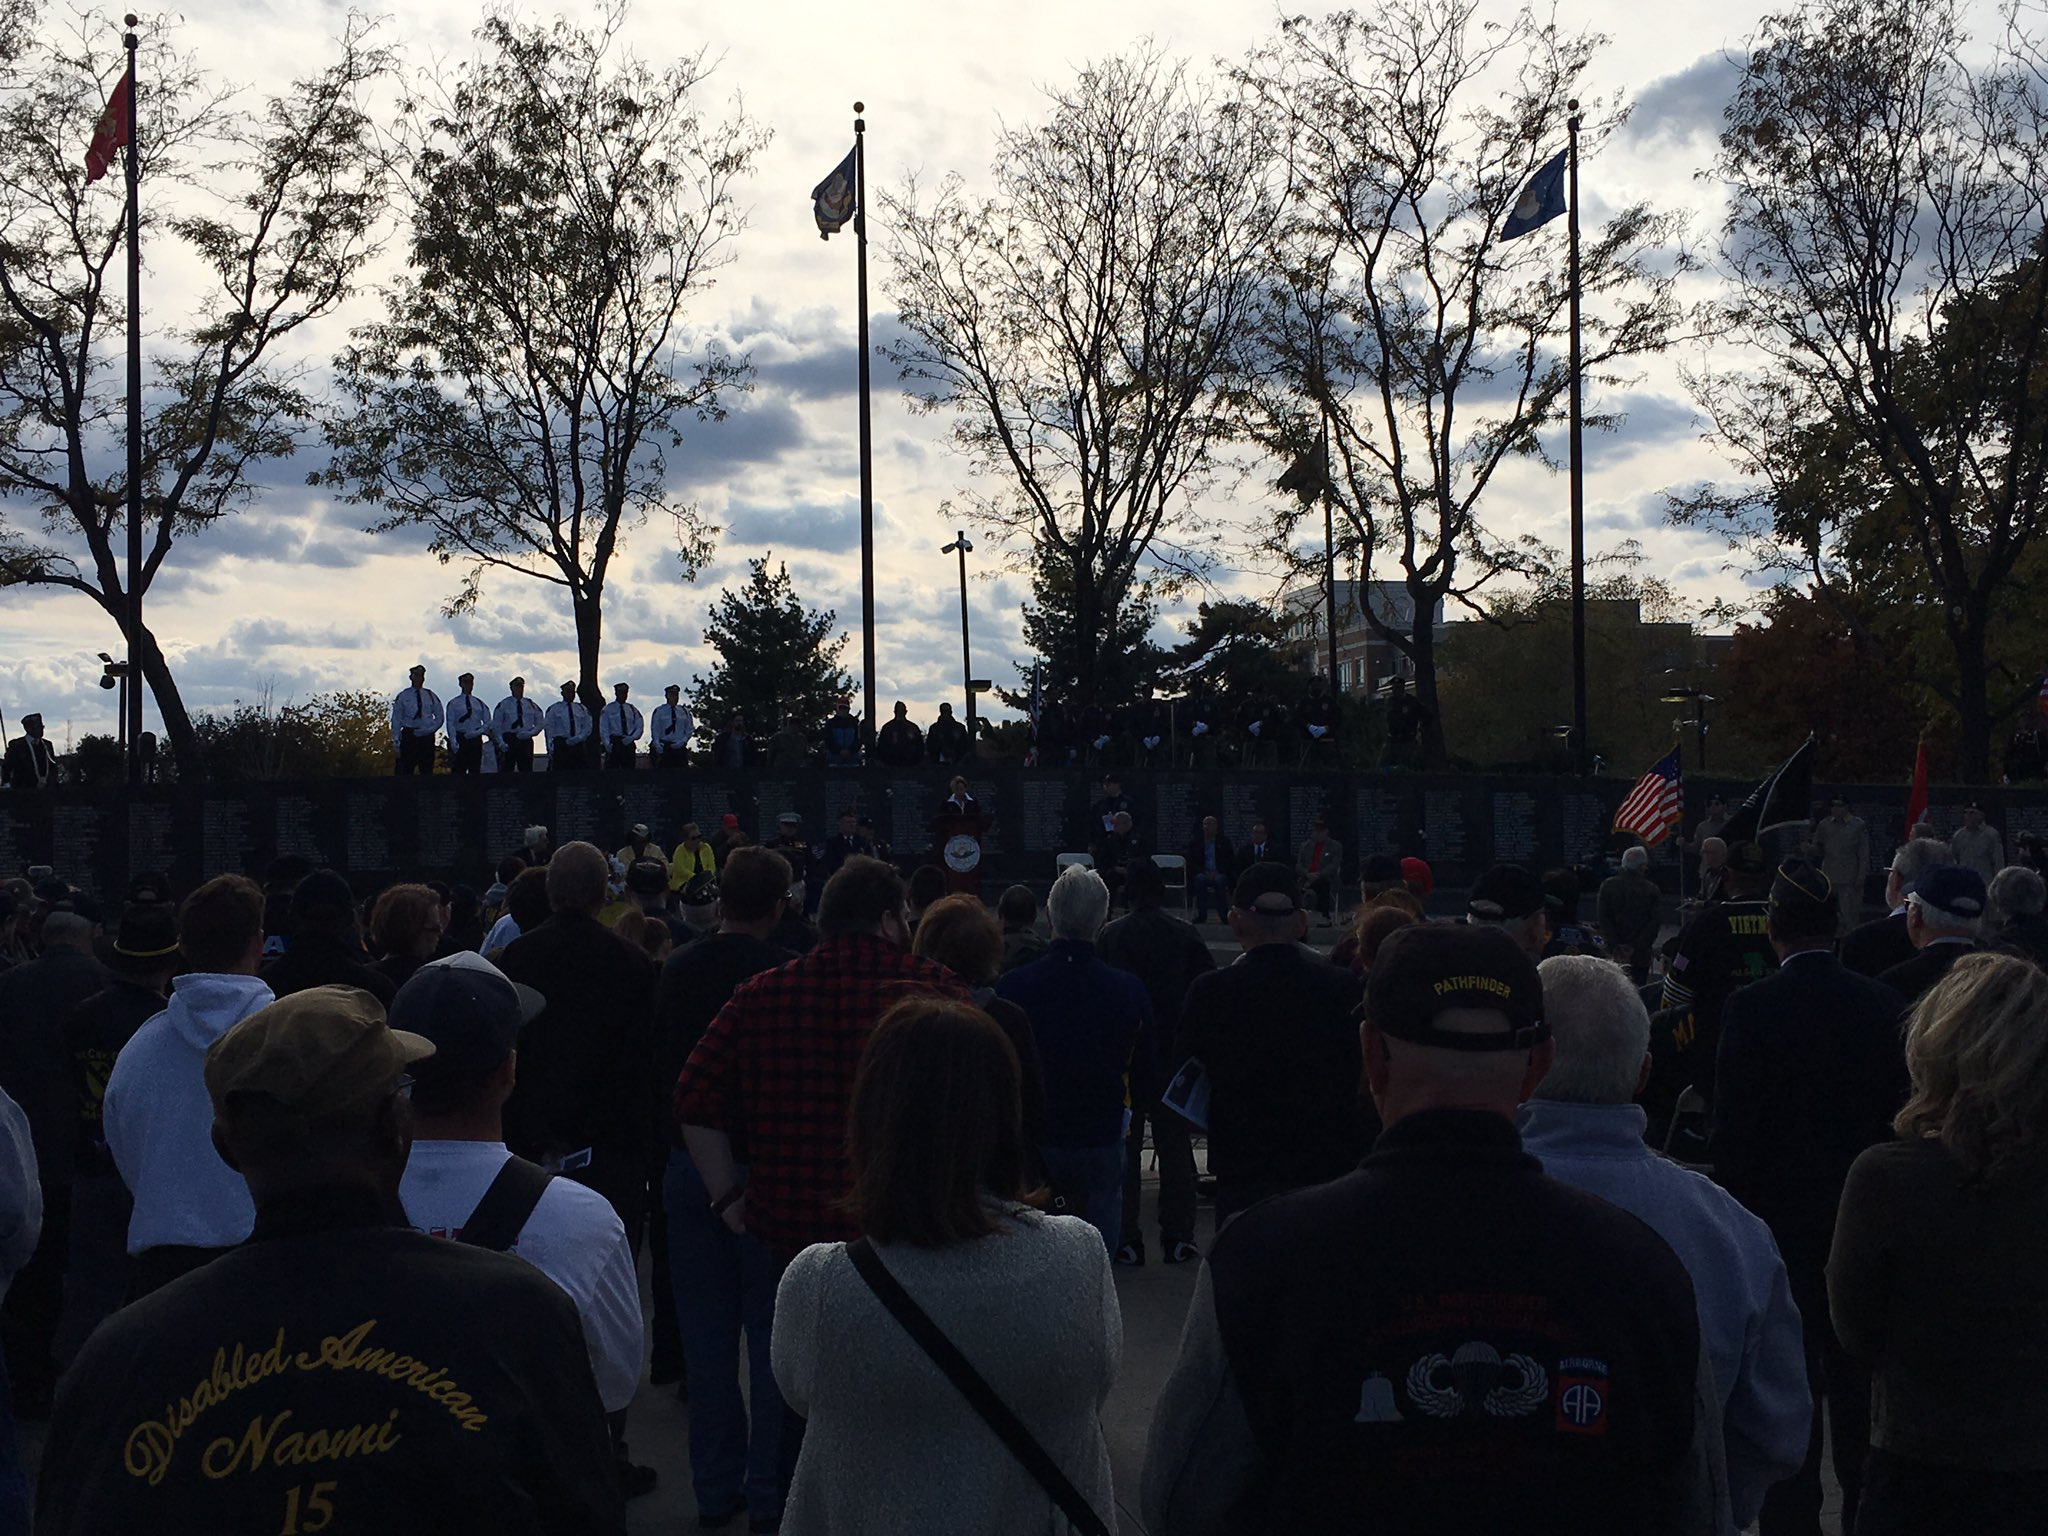 .@carol_eggert speaks to Veterans at the Philadelphia Vietnam Memorial. #servicematters @ComcastMilitary #Veterans #wehirevets https://t.co/mwjyxk6axw